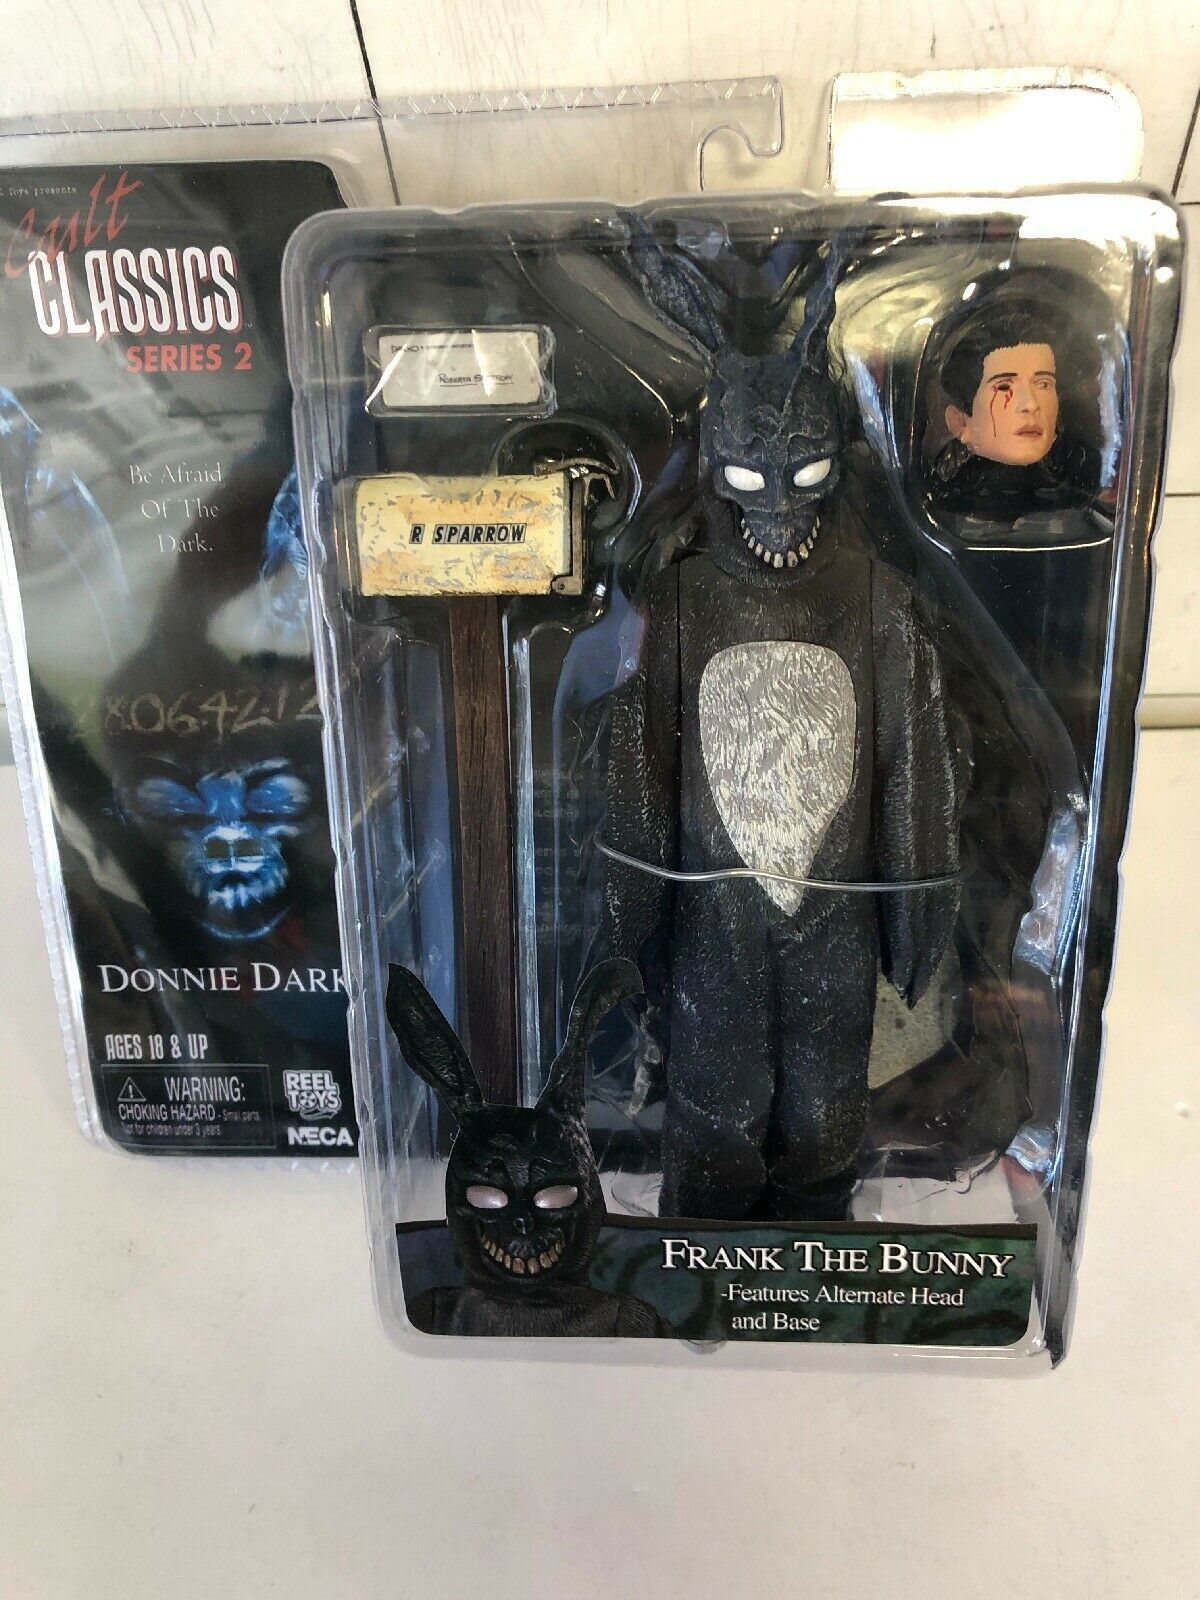 NECA Cult Classics Series 2 Frank The Bunny Donnie Darko Action Figure SEALED